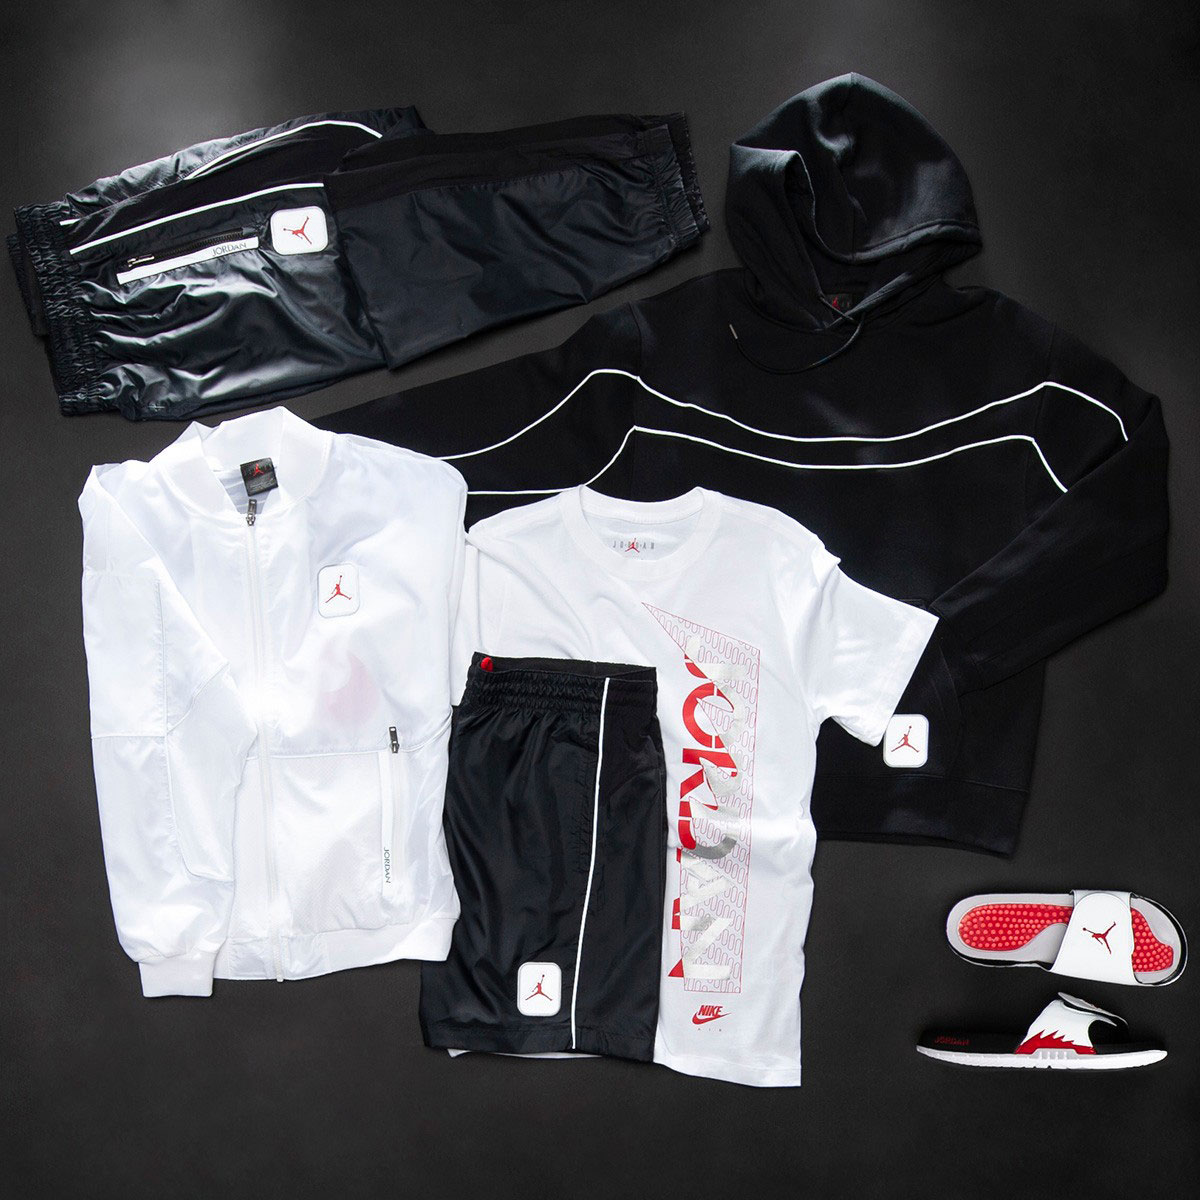 air-jordan-5-fire-red-3m-silver-tongue-clothing-outfits